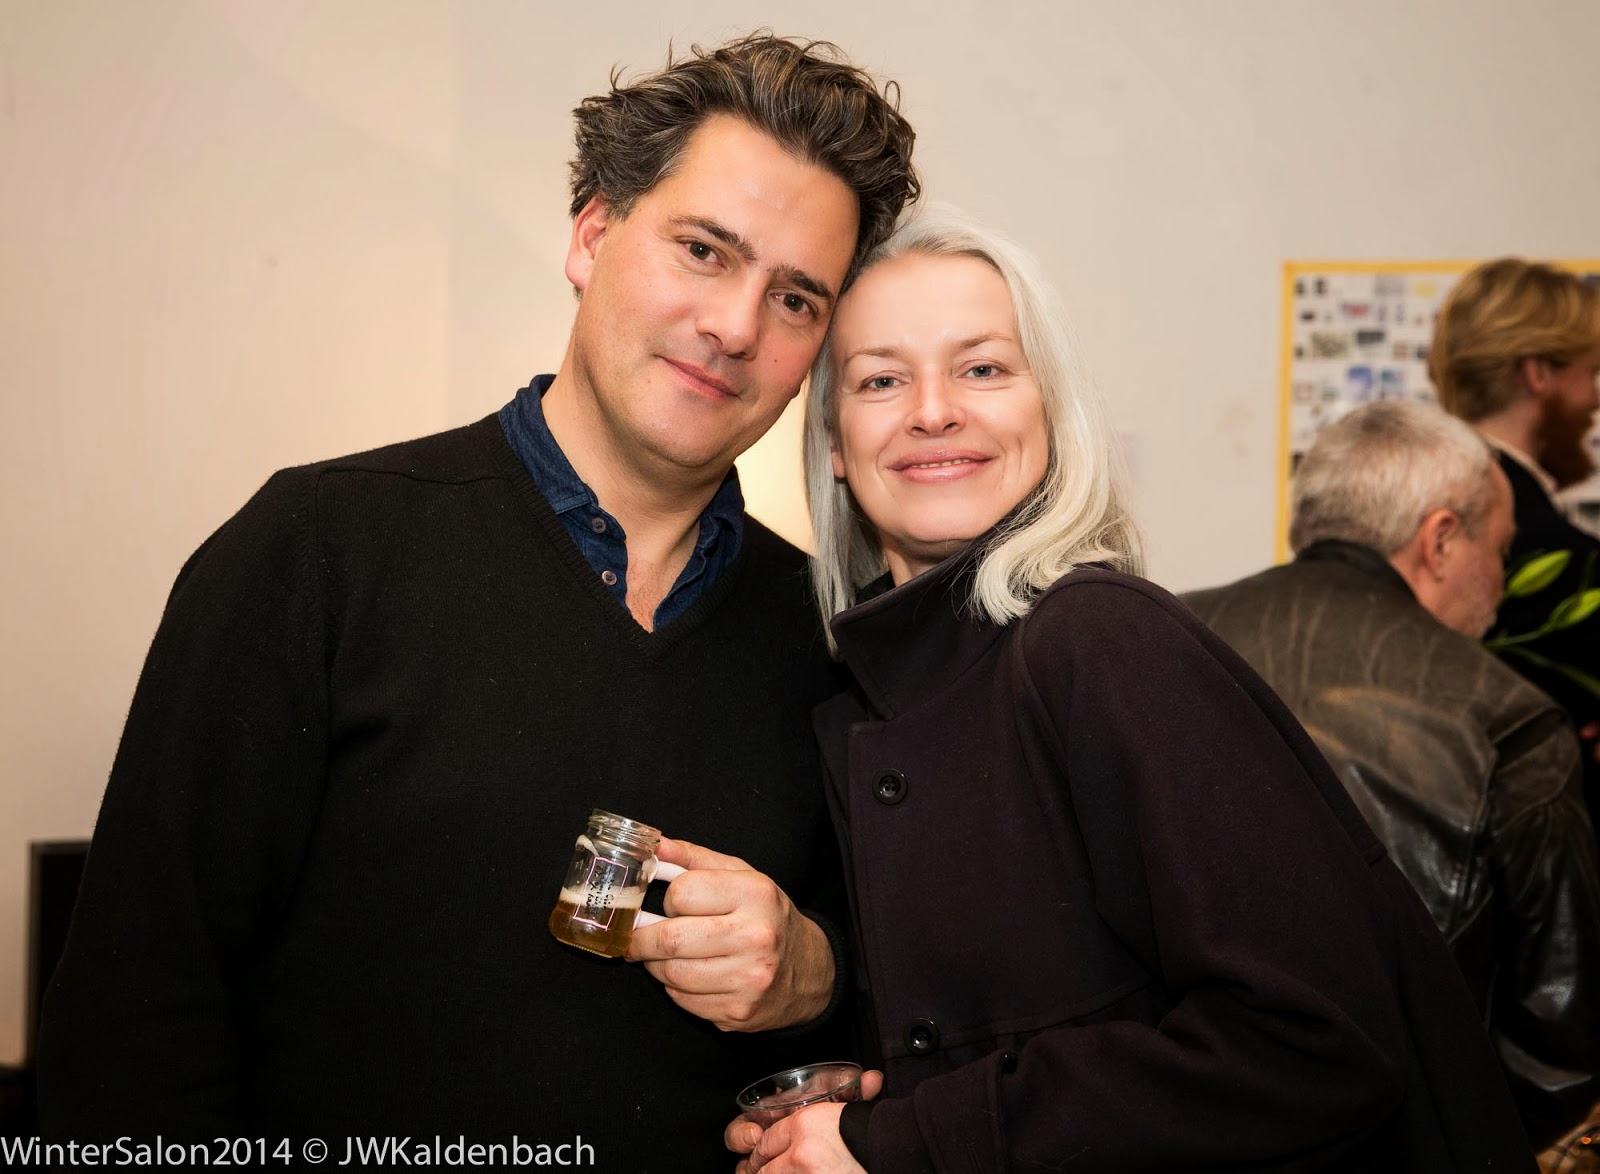 winterSALON/2014: Drinks at Magazijn